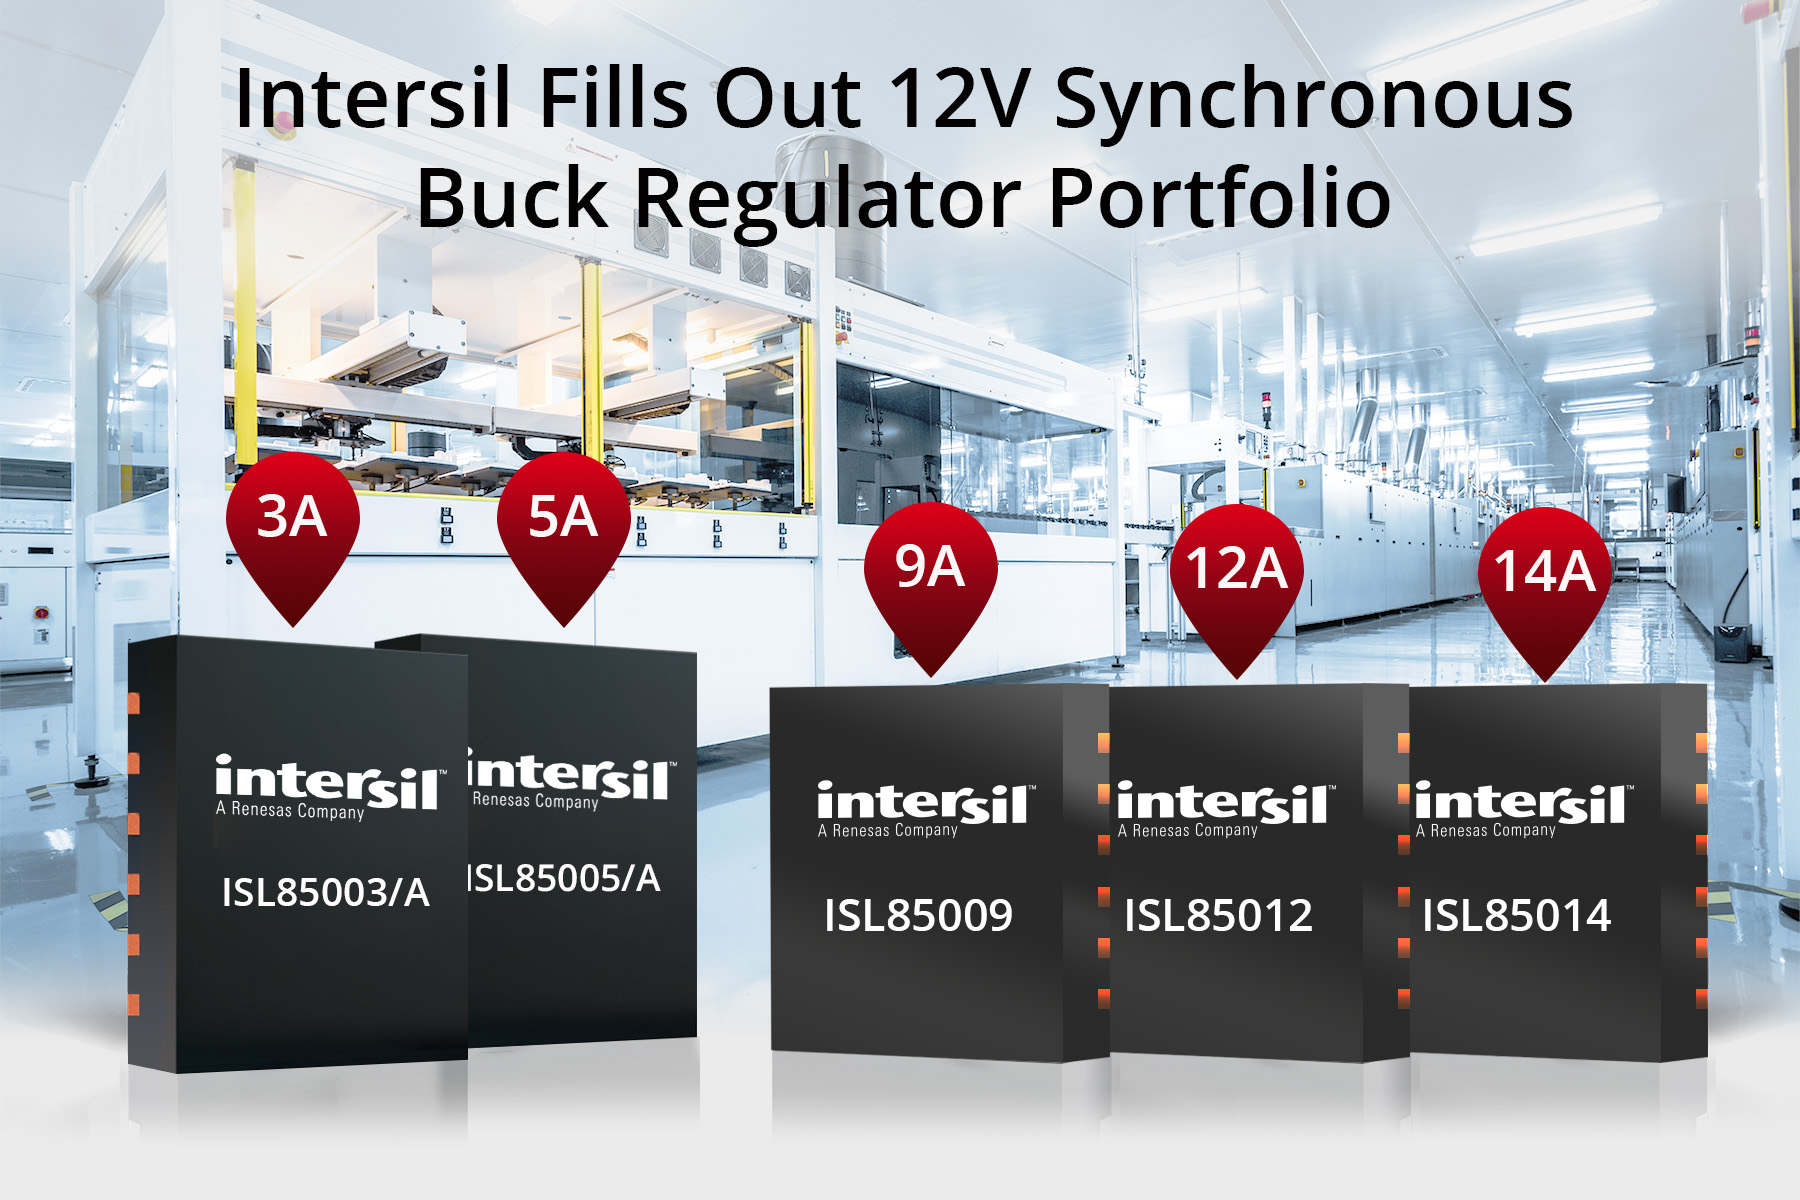 Intersil Fills Out 12V Synchronous Buck Regulator Portfolio